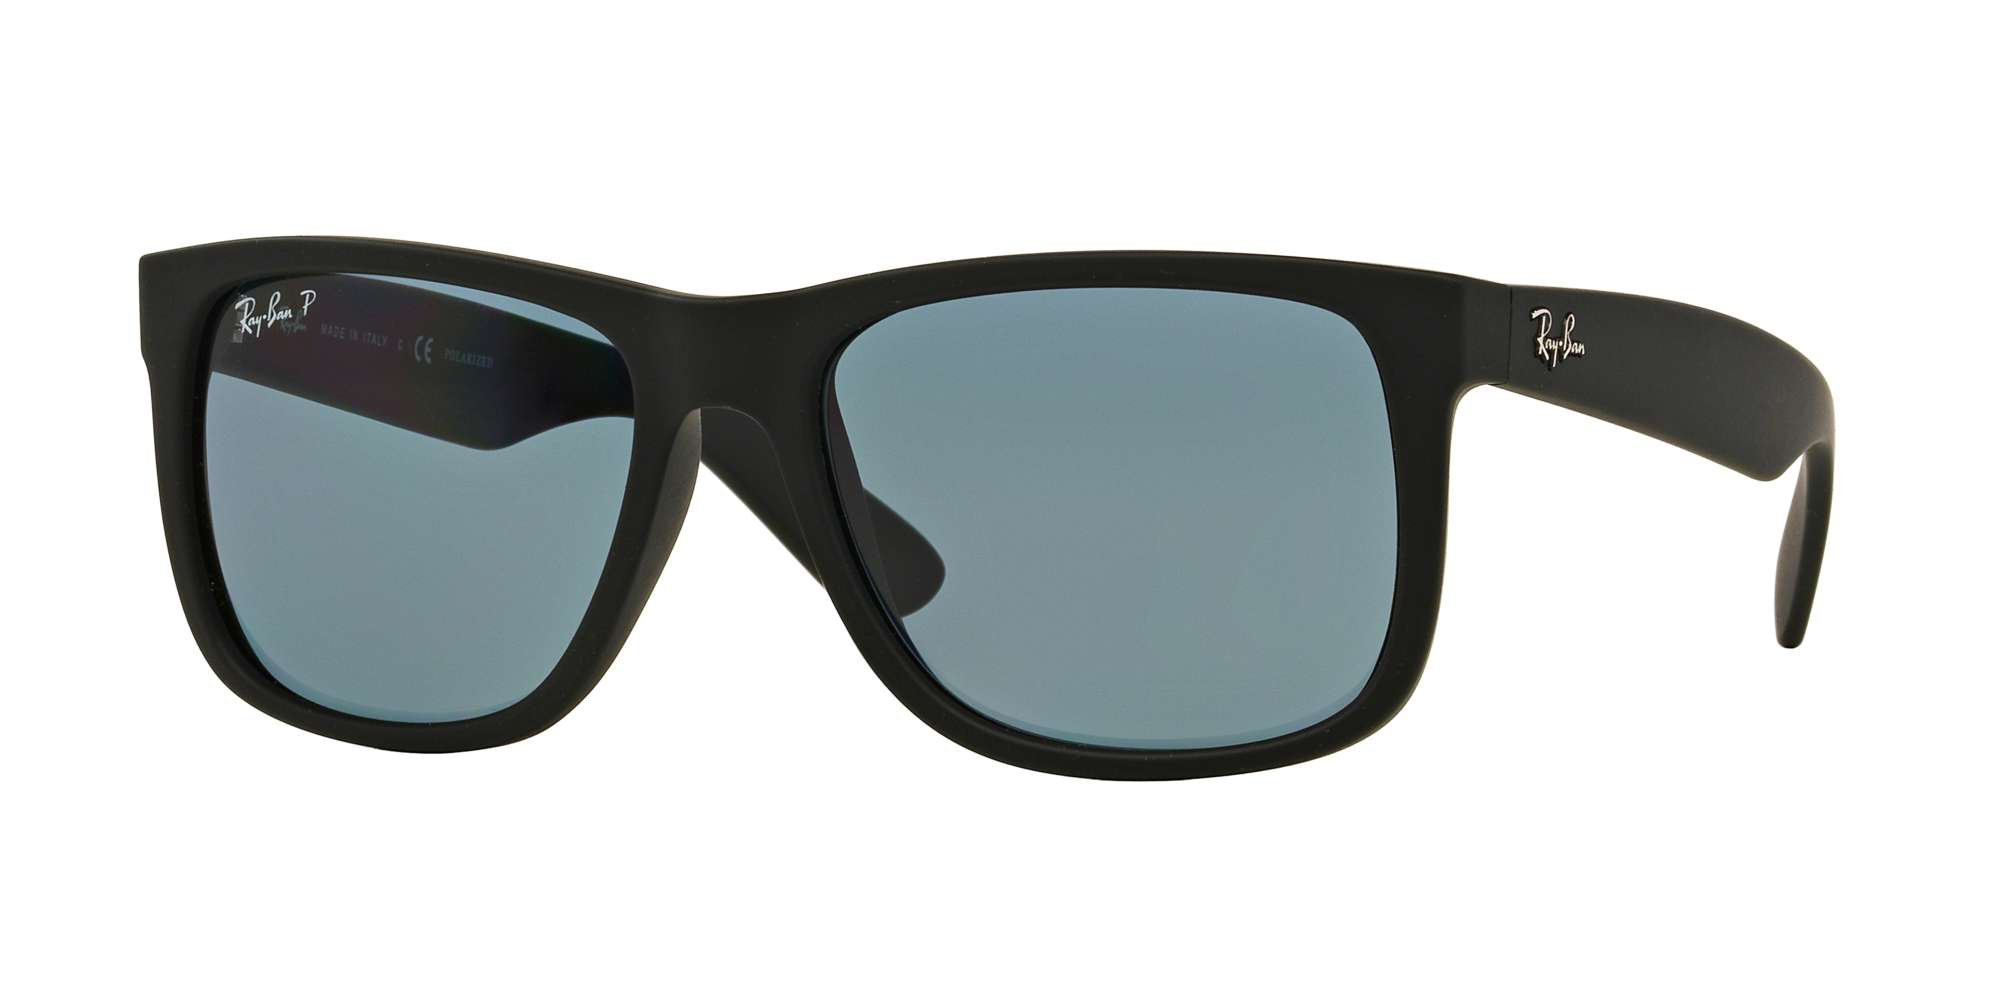 BLACK RUBBER / DARK BLUE POLAR lenses